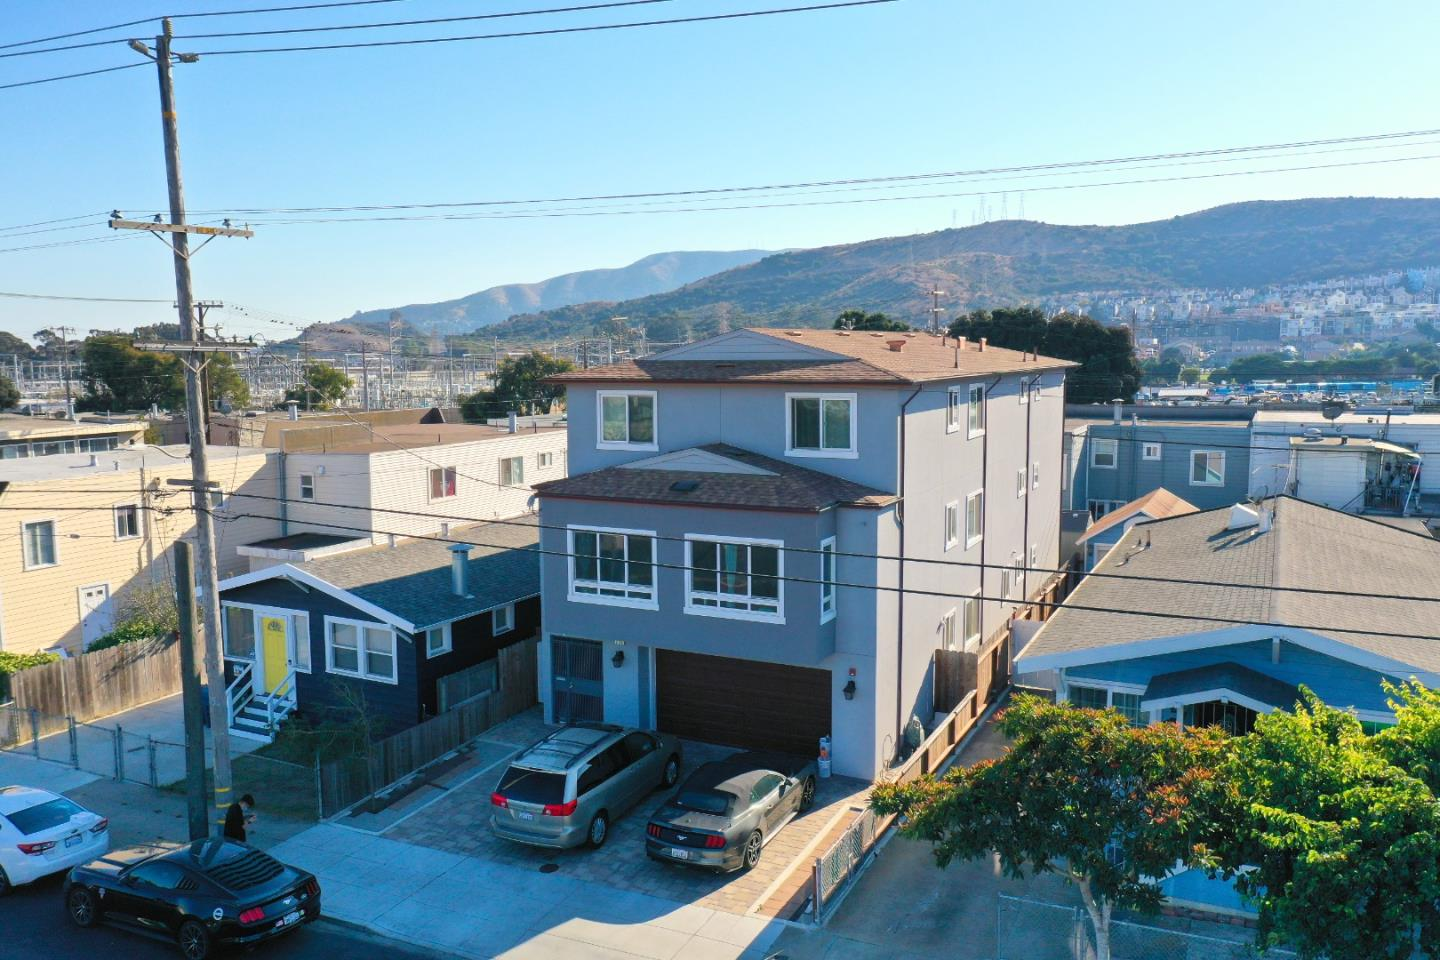 This exceptionally built single-family home is a hidden gem for potential investors. Standing tall with 11 bedrooms and 9 bathrooms, it is one of the largest single-family homes in the Daly City area. It spans over 5,342 SF over the 3 stories. Meticulously built as every inch of this property is used to the maximum potential. Don't miss your chance to see this amazing building for yourself!